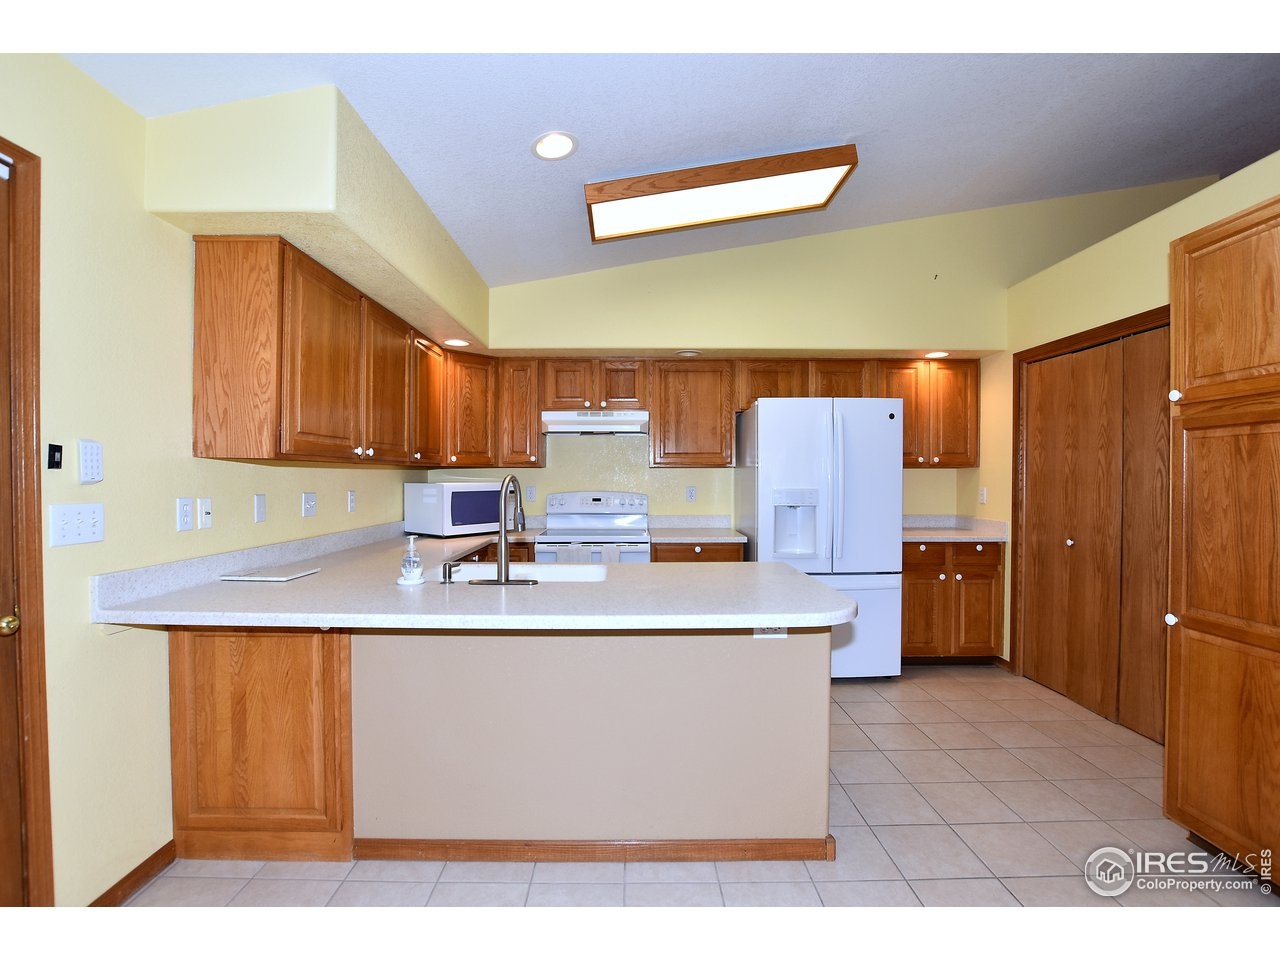 Kitchen/Nook with tile floors